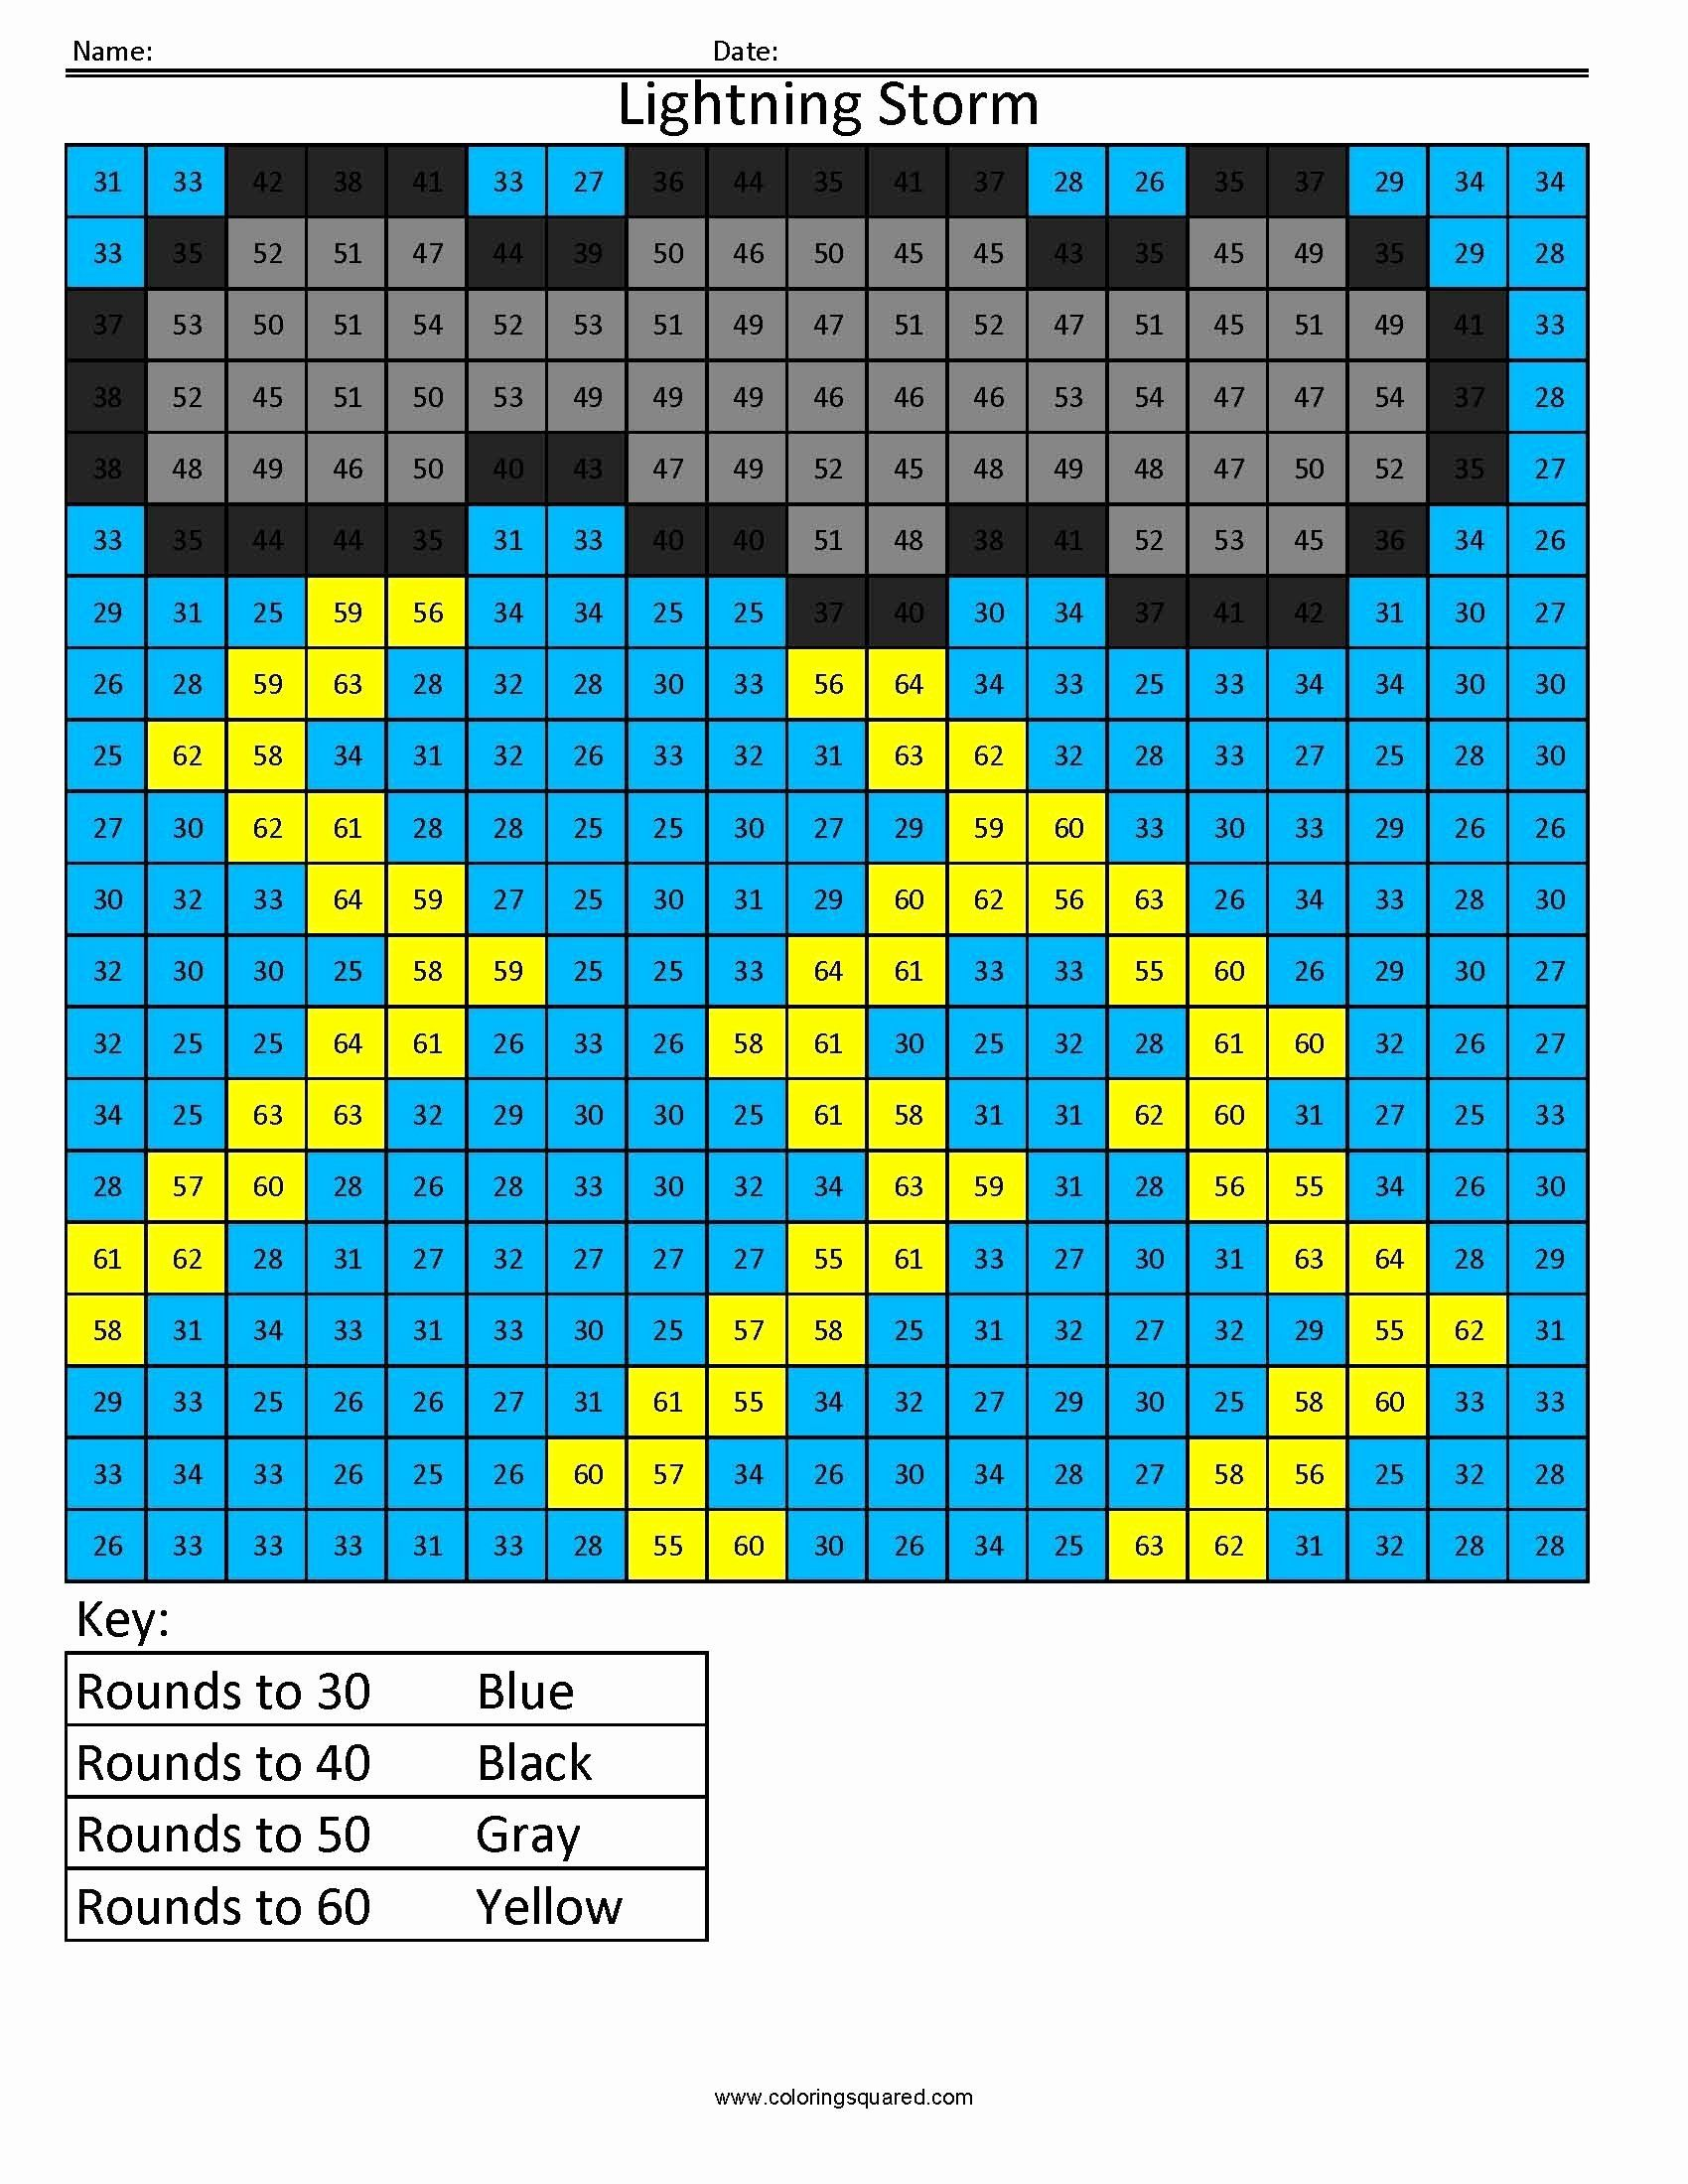 Rounding Coloring Activities Lovely Mystery Math Coloring Pages Beautiful Rounding Coloring Activities Lovely Myst In 2020 Math Coloring Kids Math Worksheets Free Math [ 2200 x 1700 Pixel ]